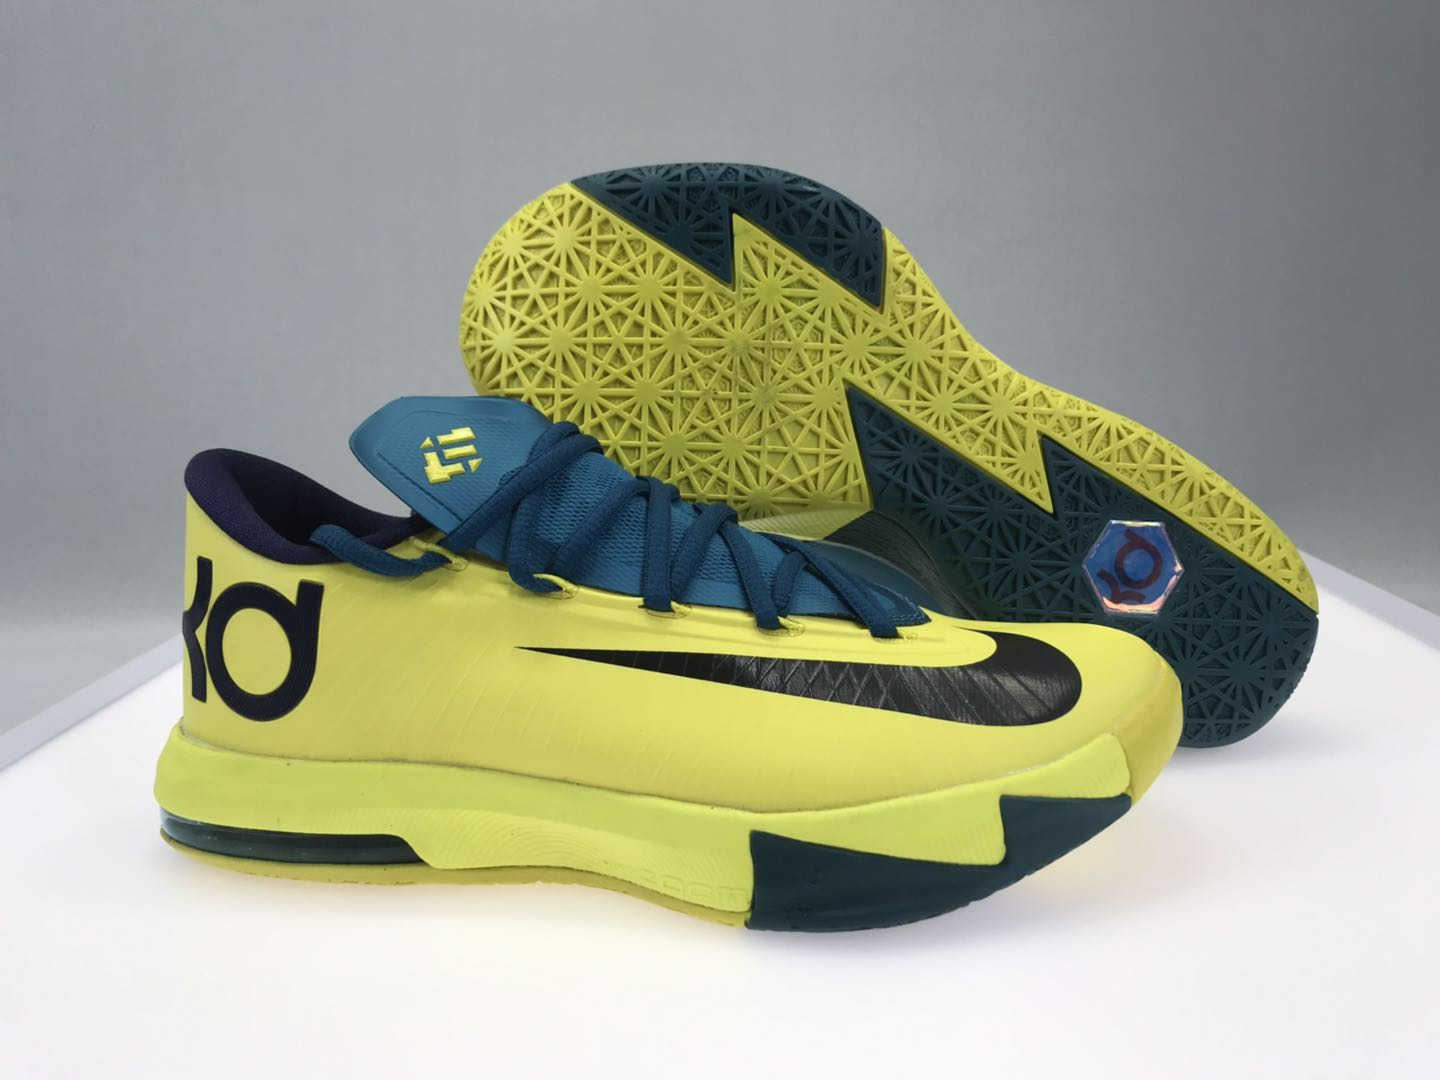 Nike KD 6 Yellow Blue Black Shoes